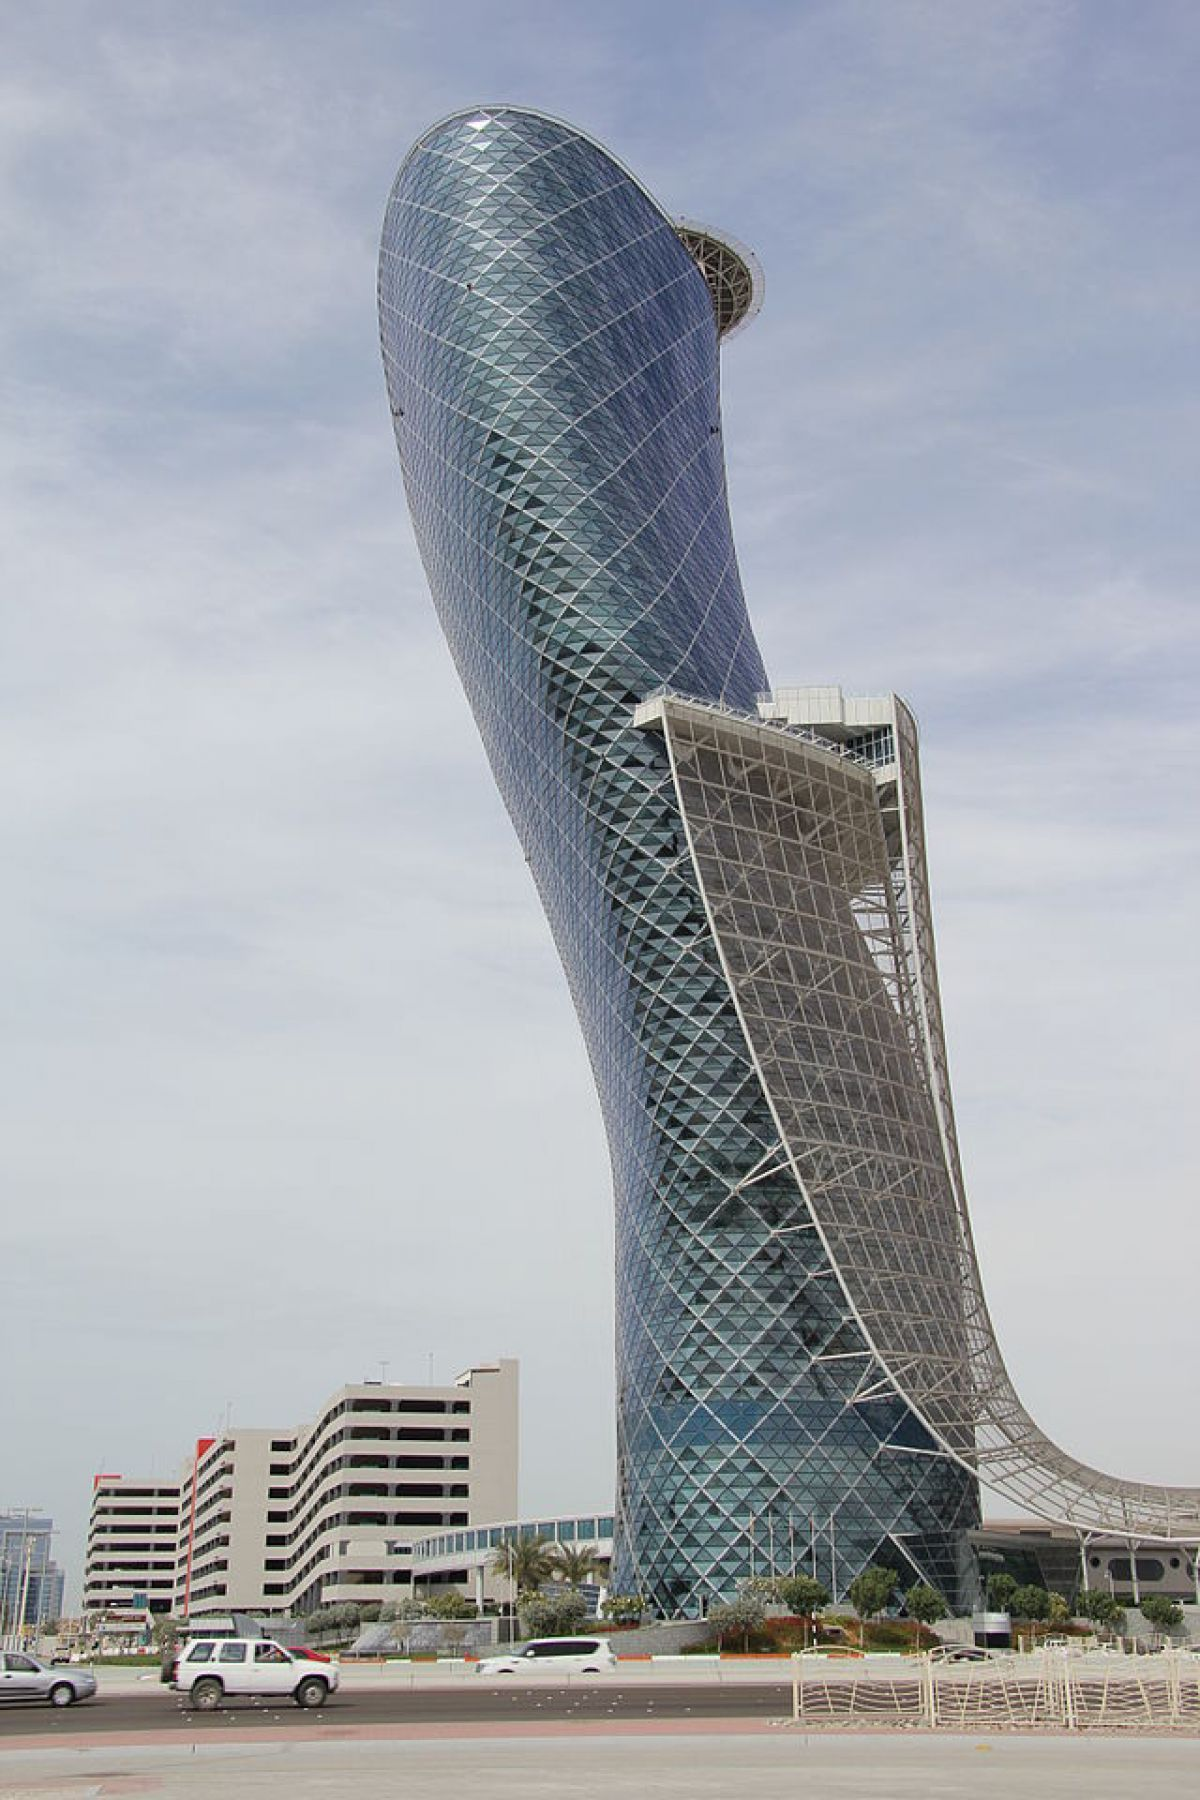 11 Totally Weird Buildings From Around the World